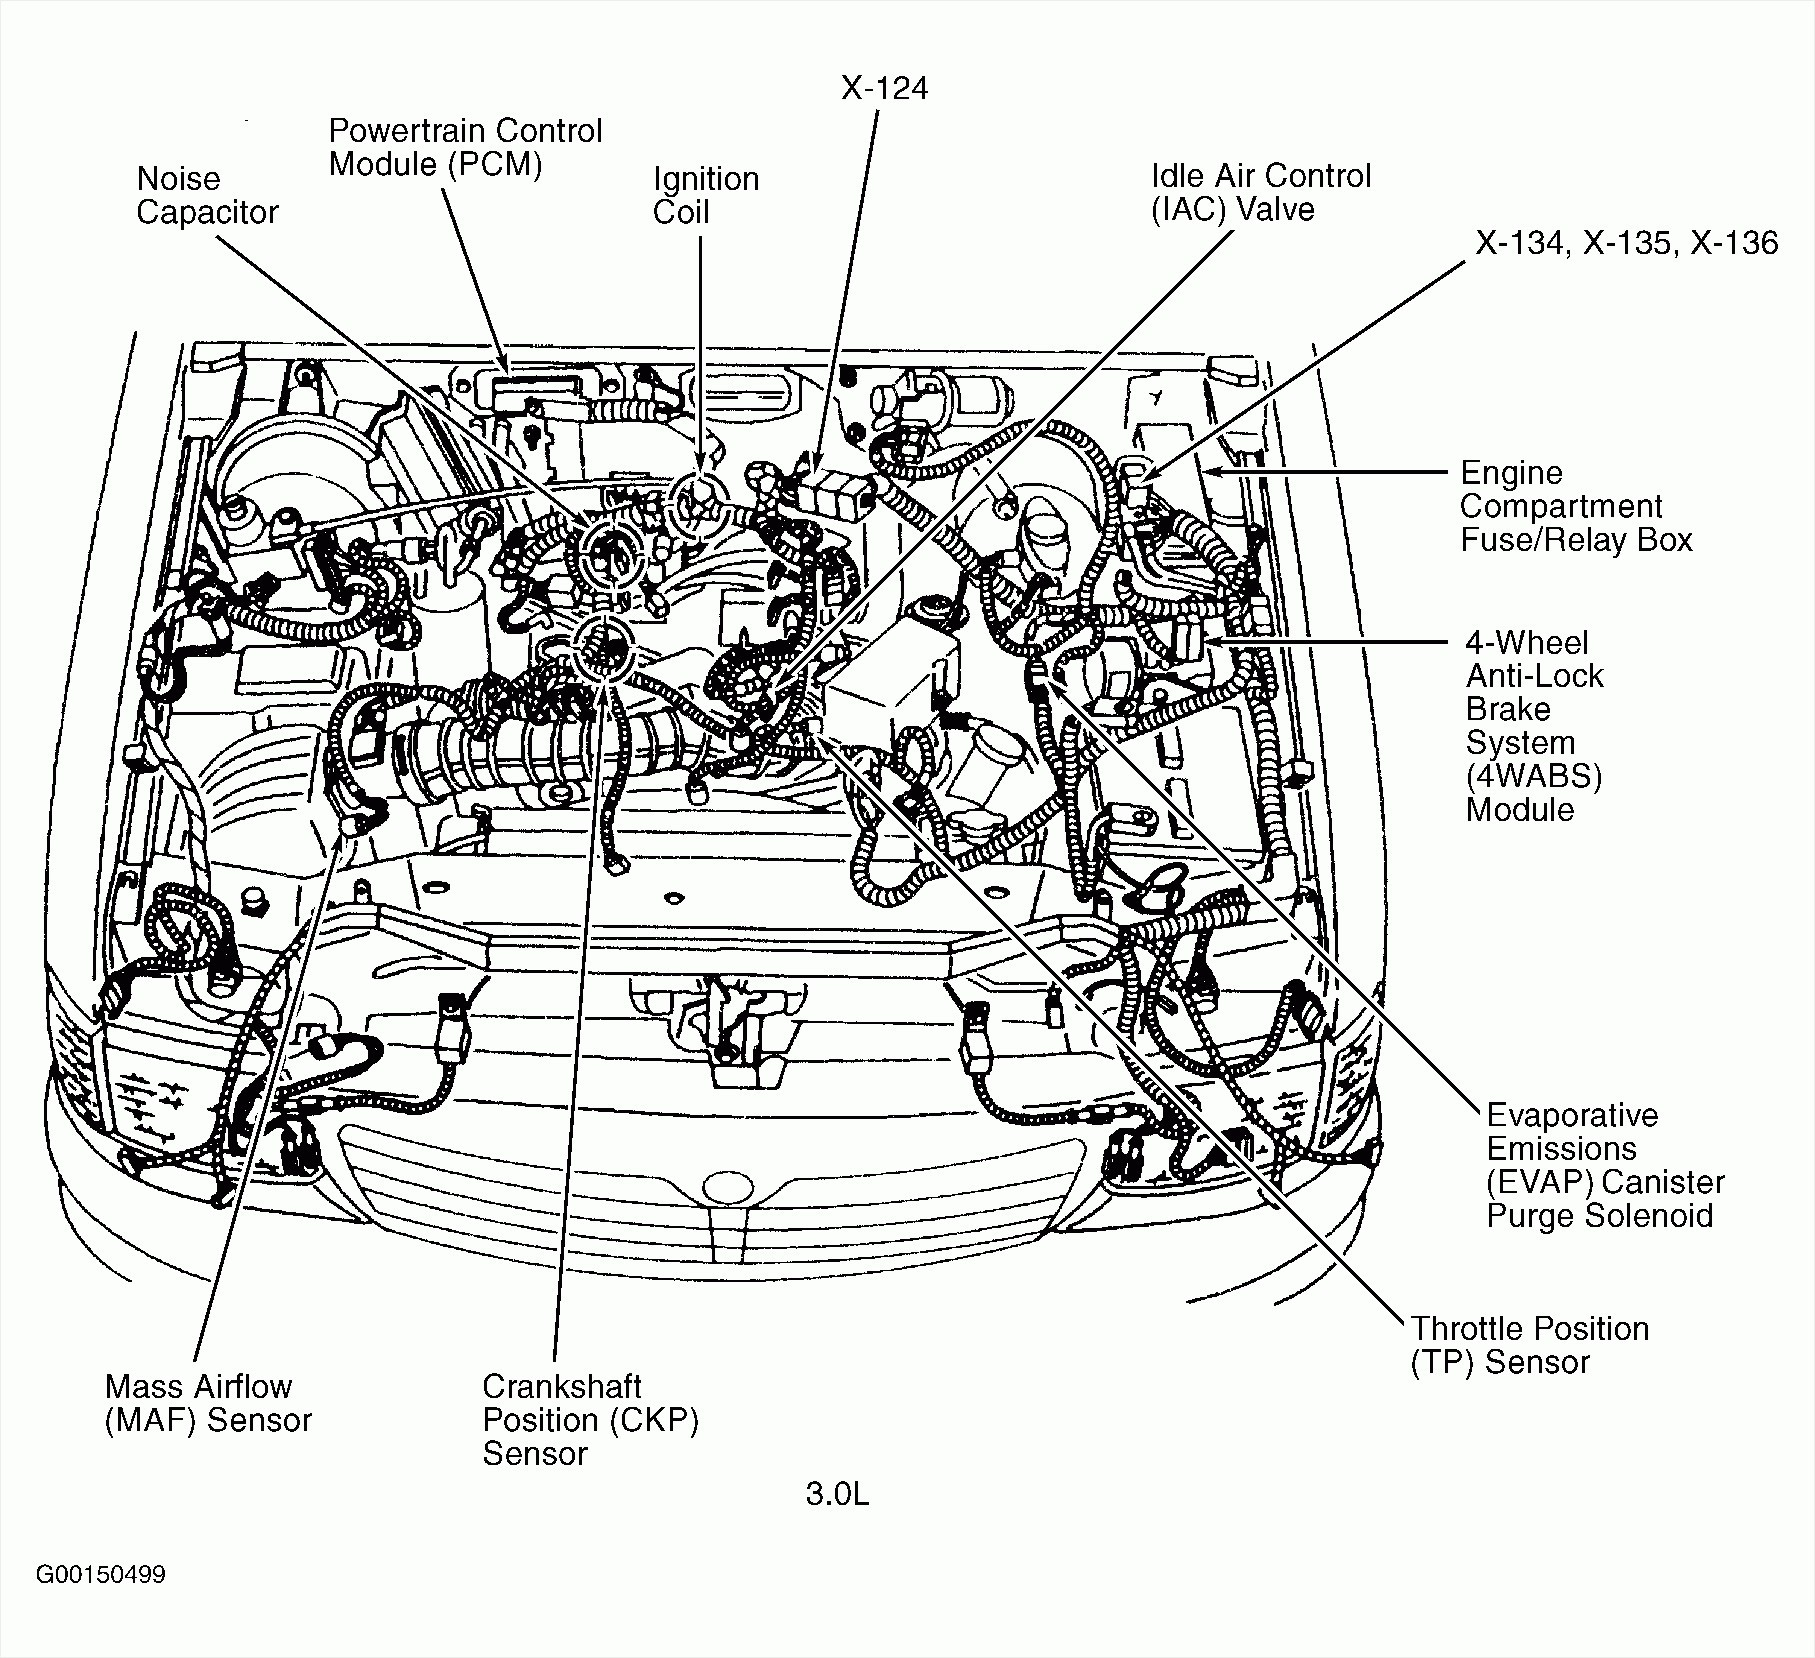 Pontiac 3 1 Engine Diagram - Wiring Diagram Library •